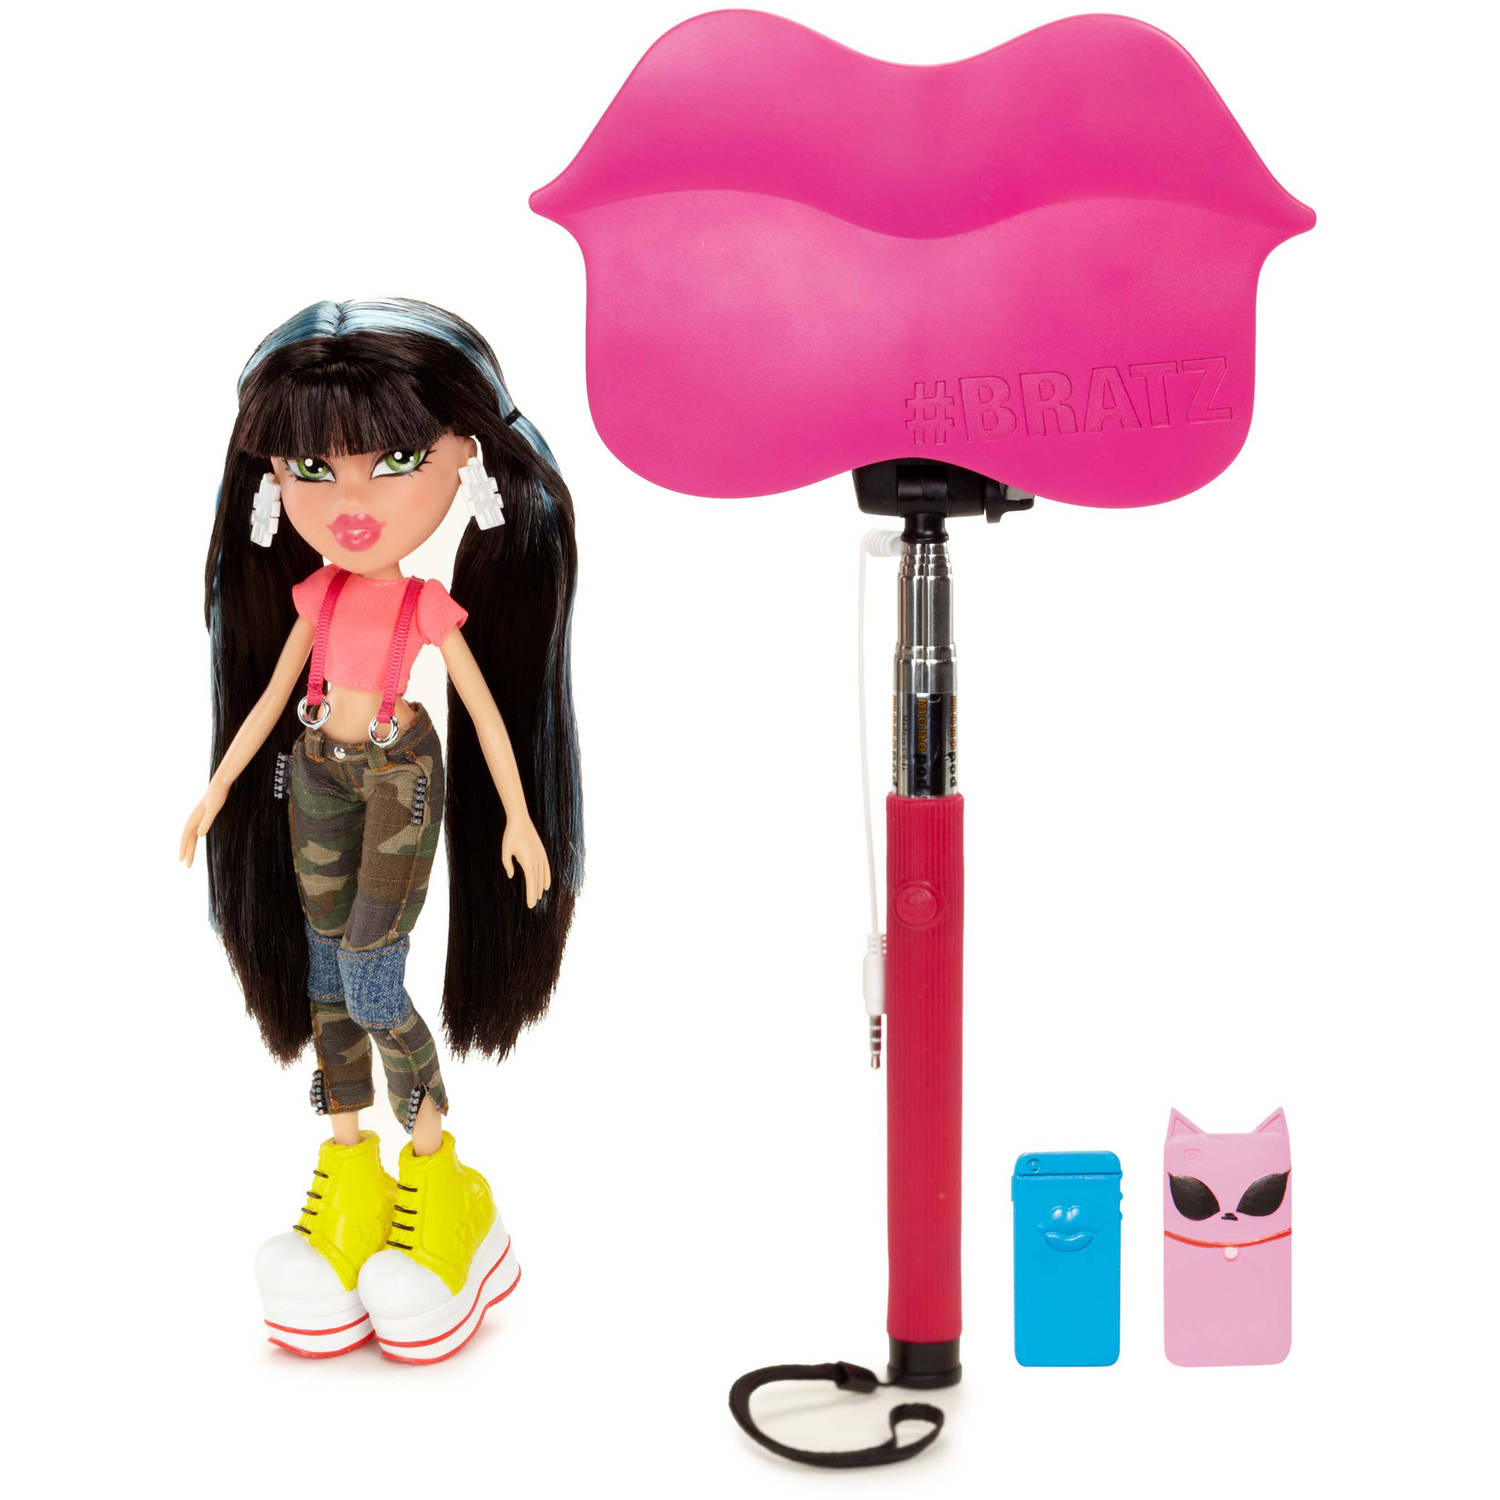 Bratz #Selfie Stick with Doll, Jade by MGA Entertainment